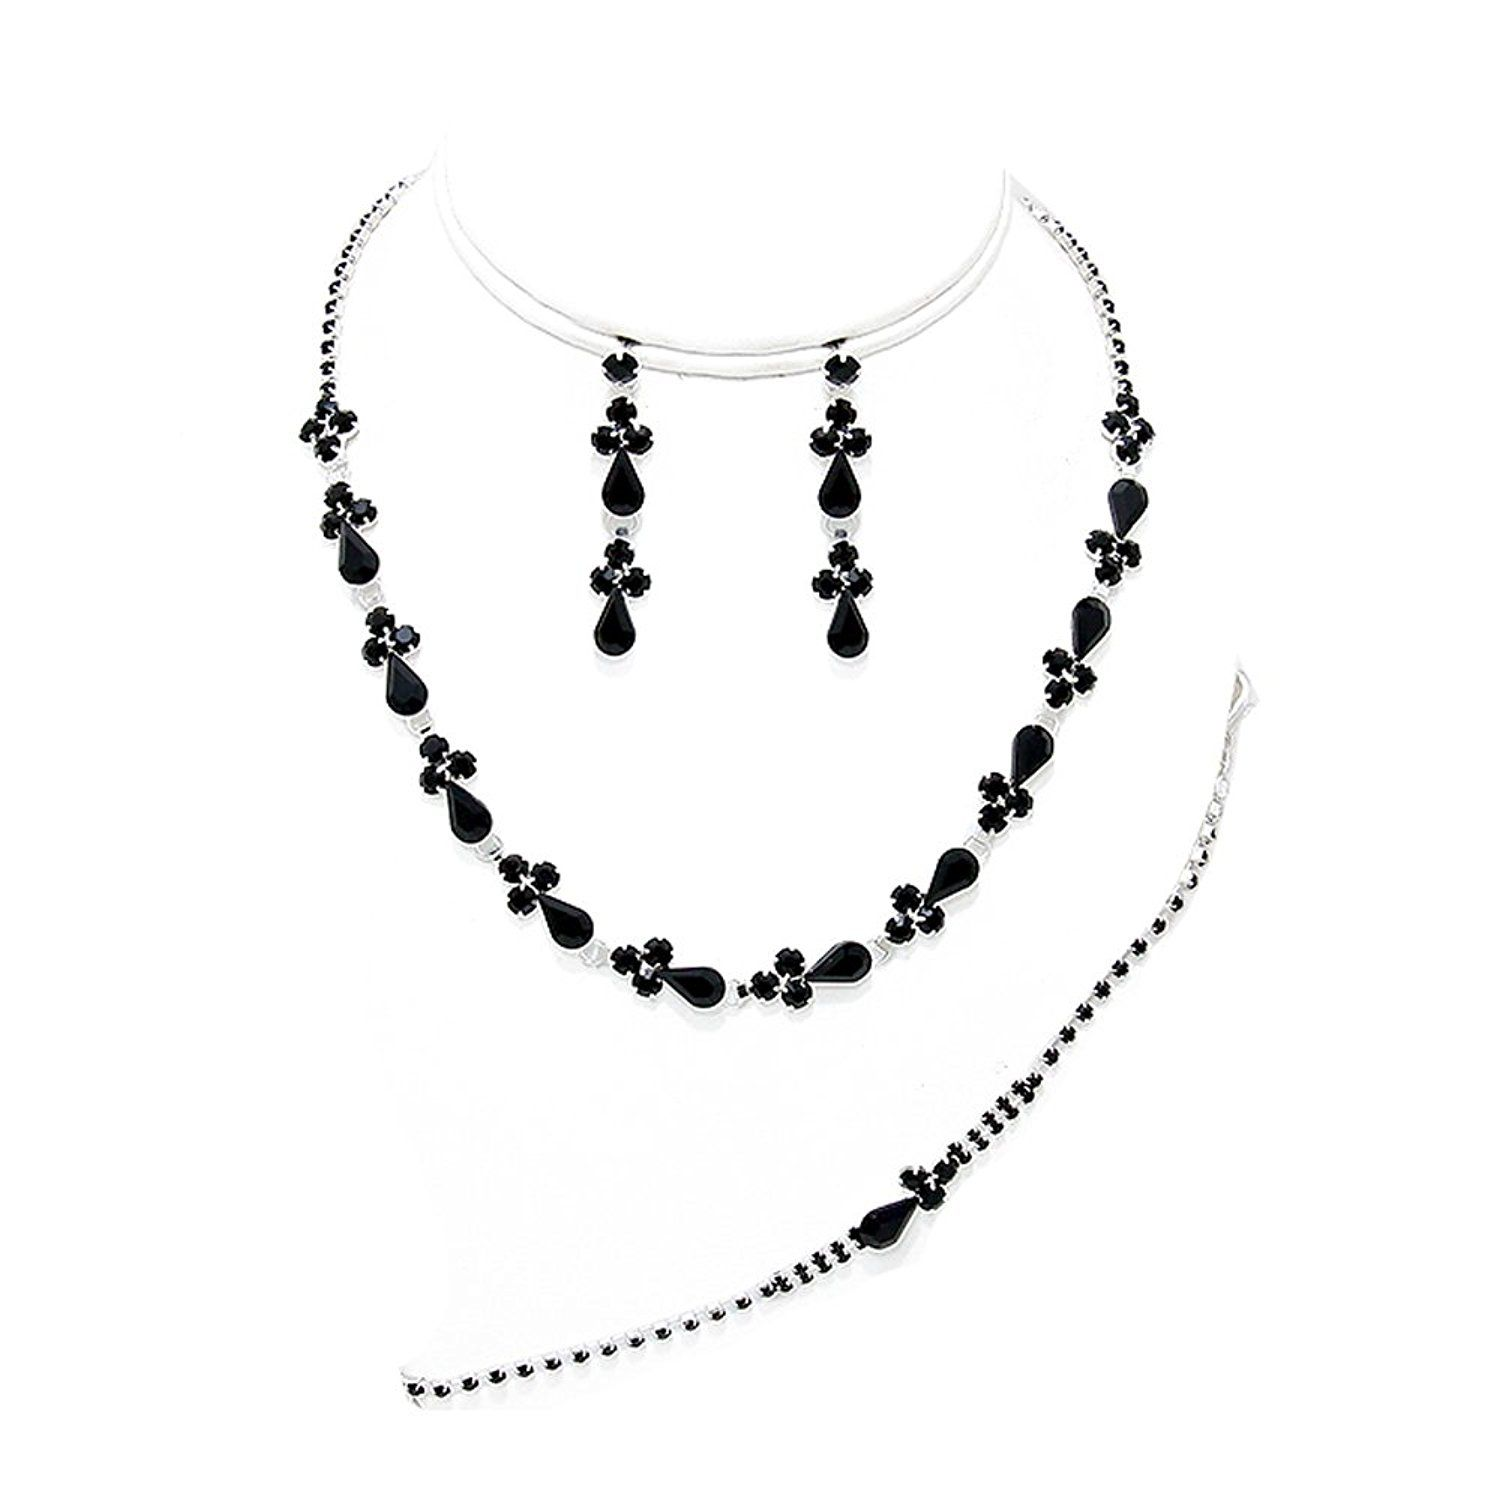 a3786bba6 Black diamante necklace bracelet and earring set for proms parties ** Be  sure to check